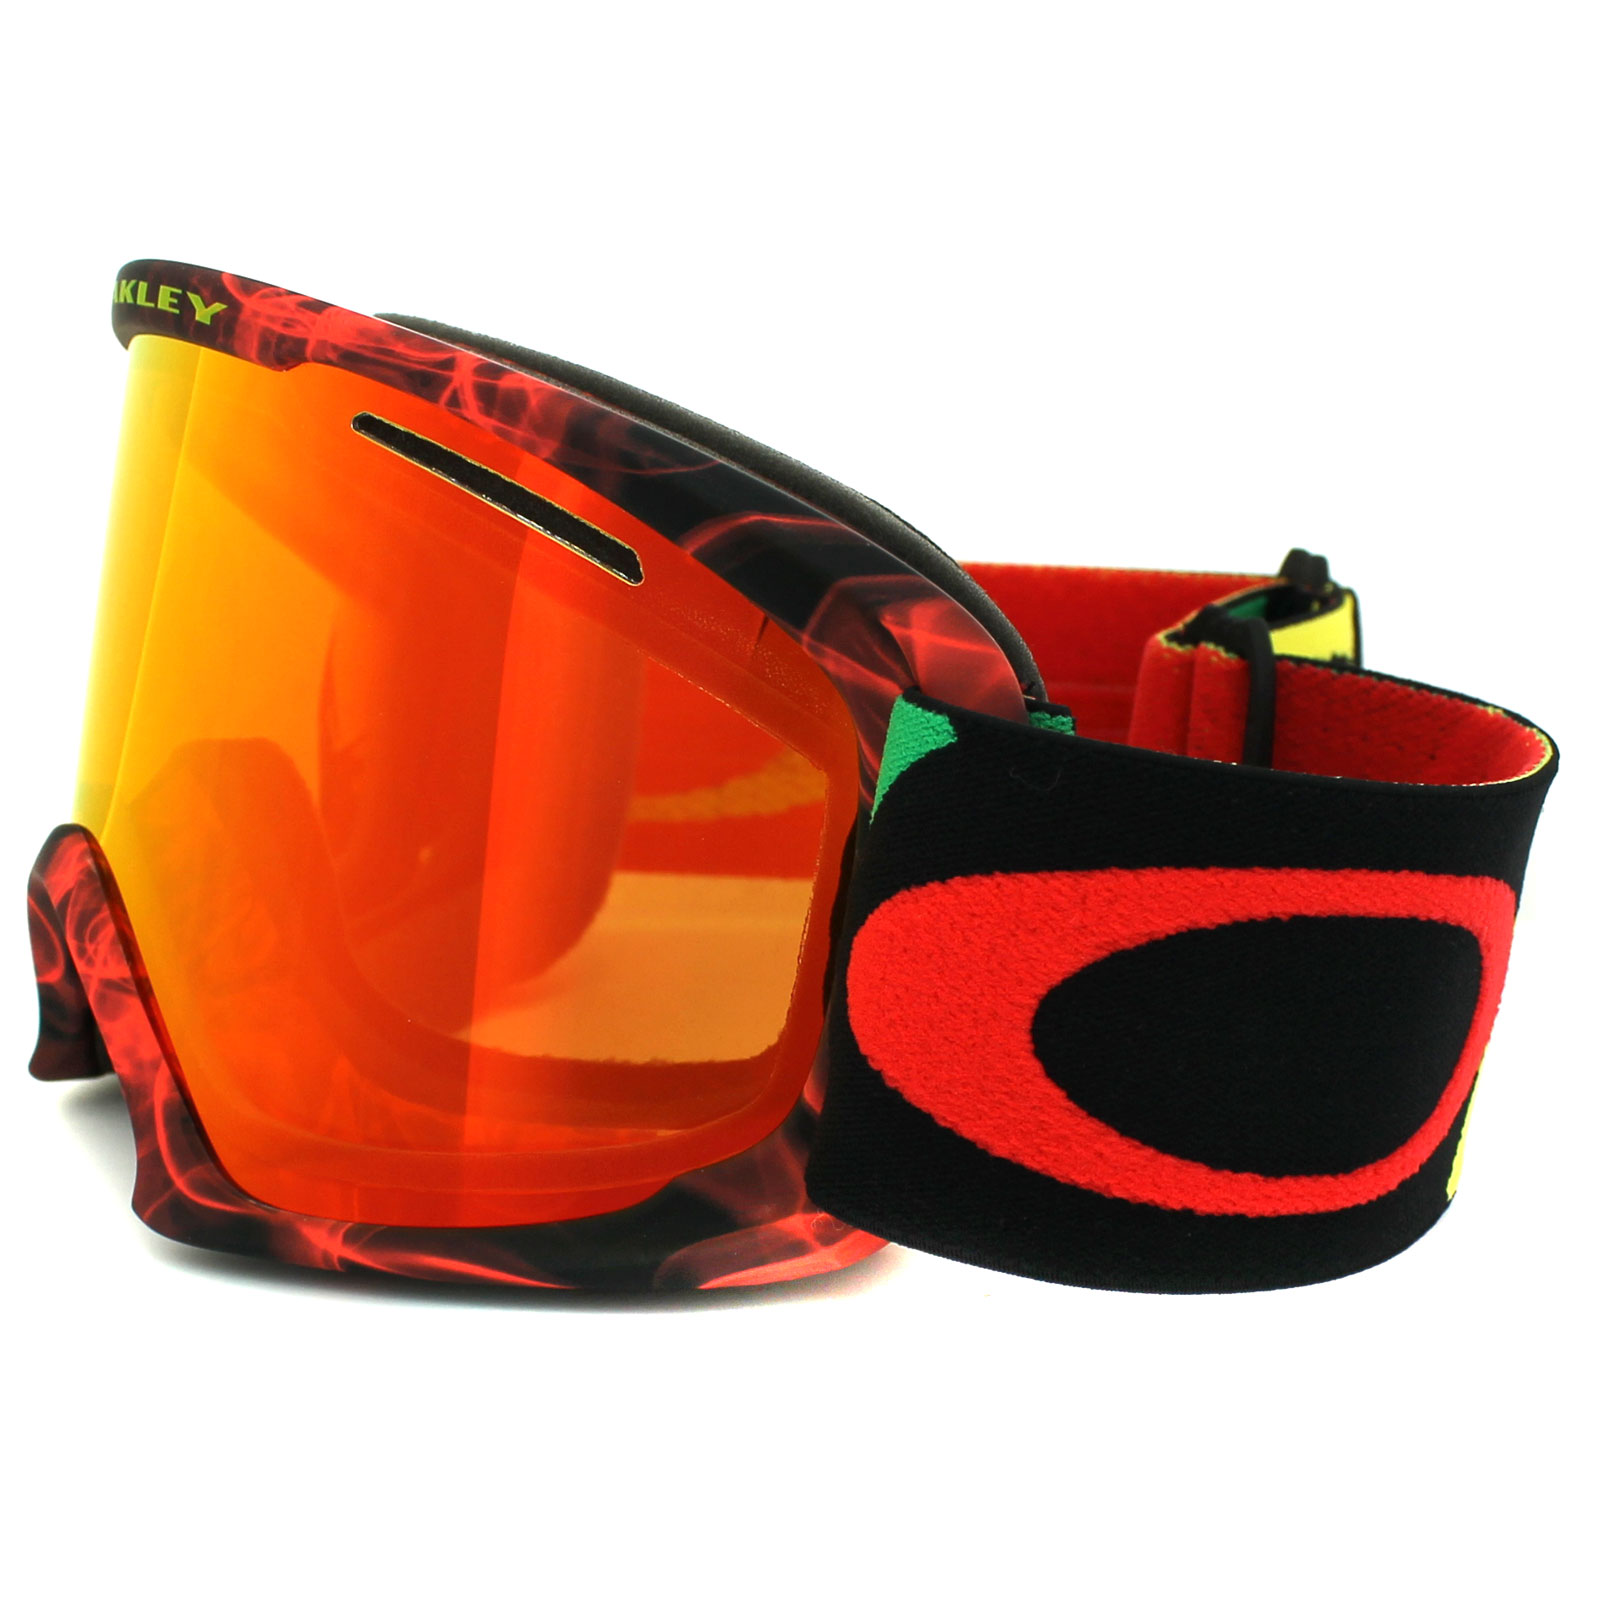 Red Oakley Goggles